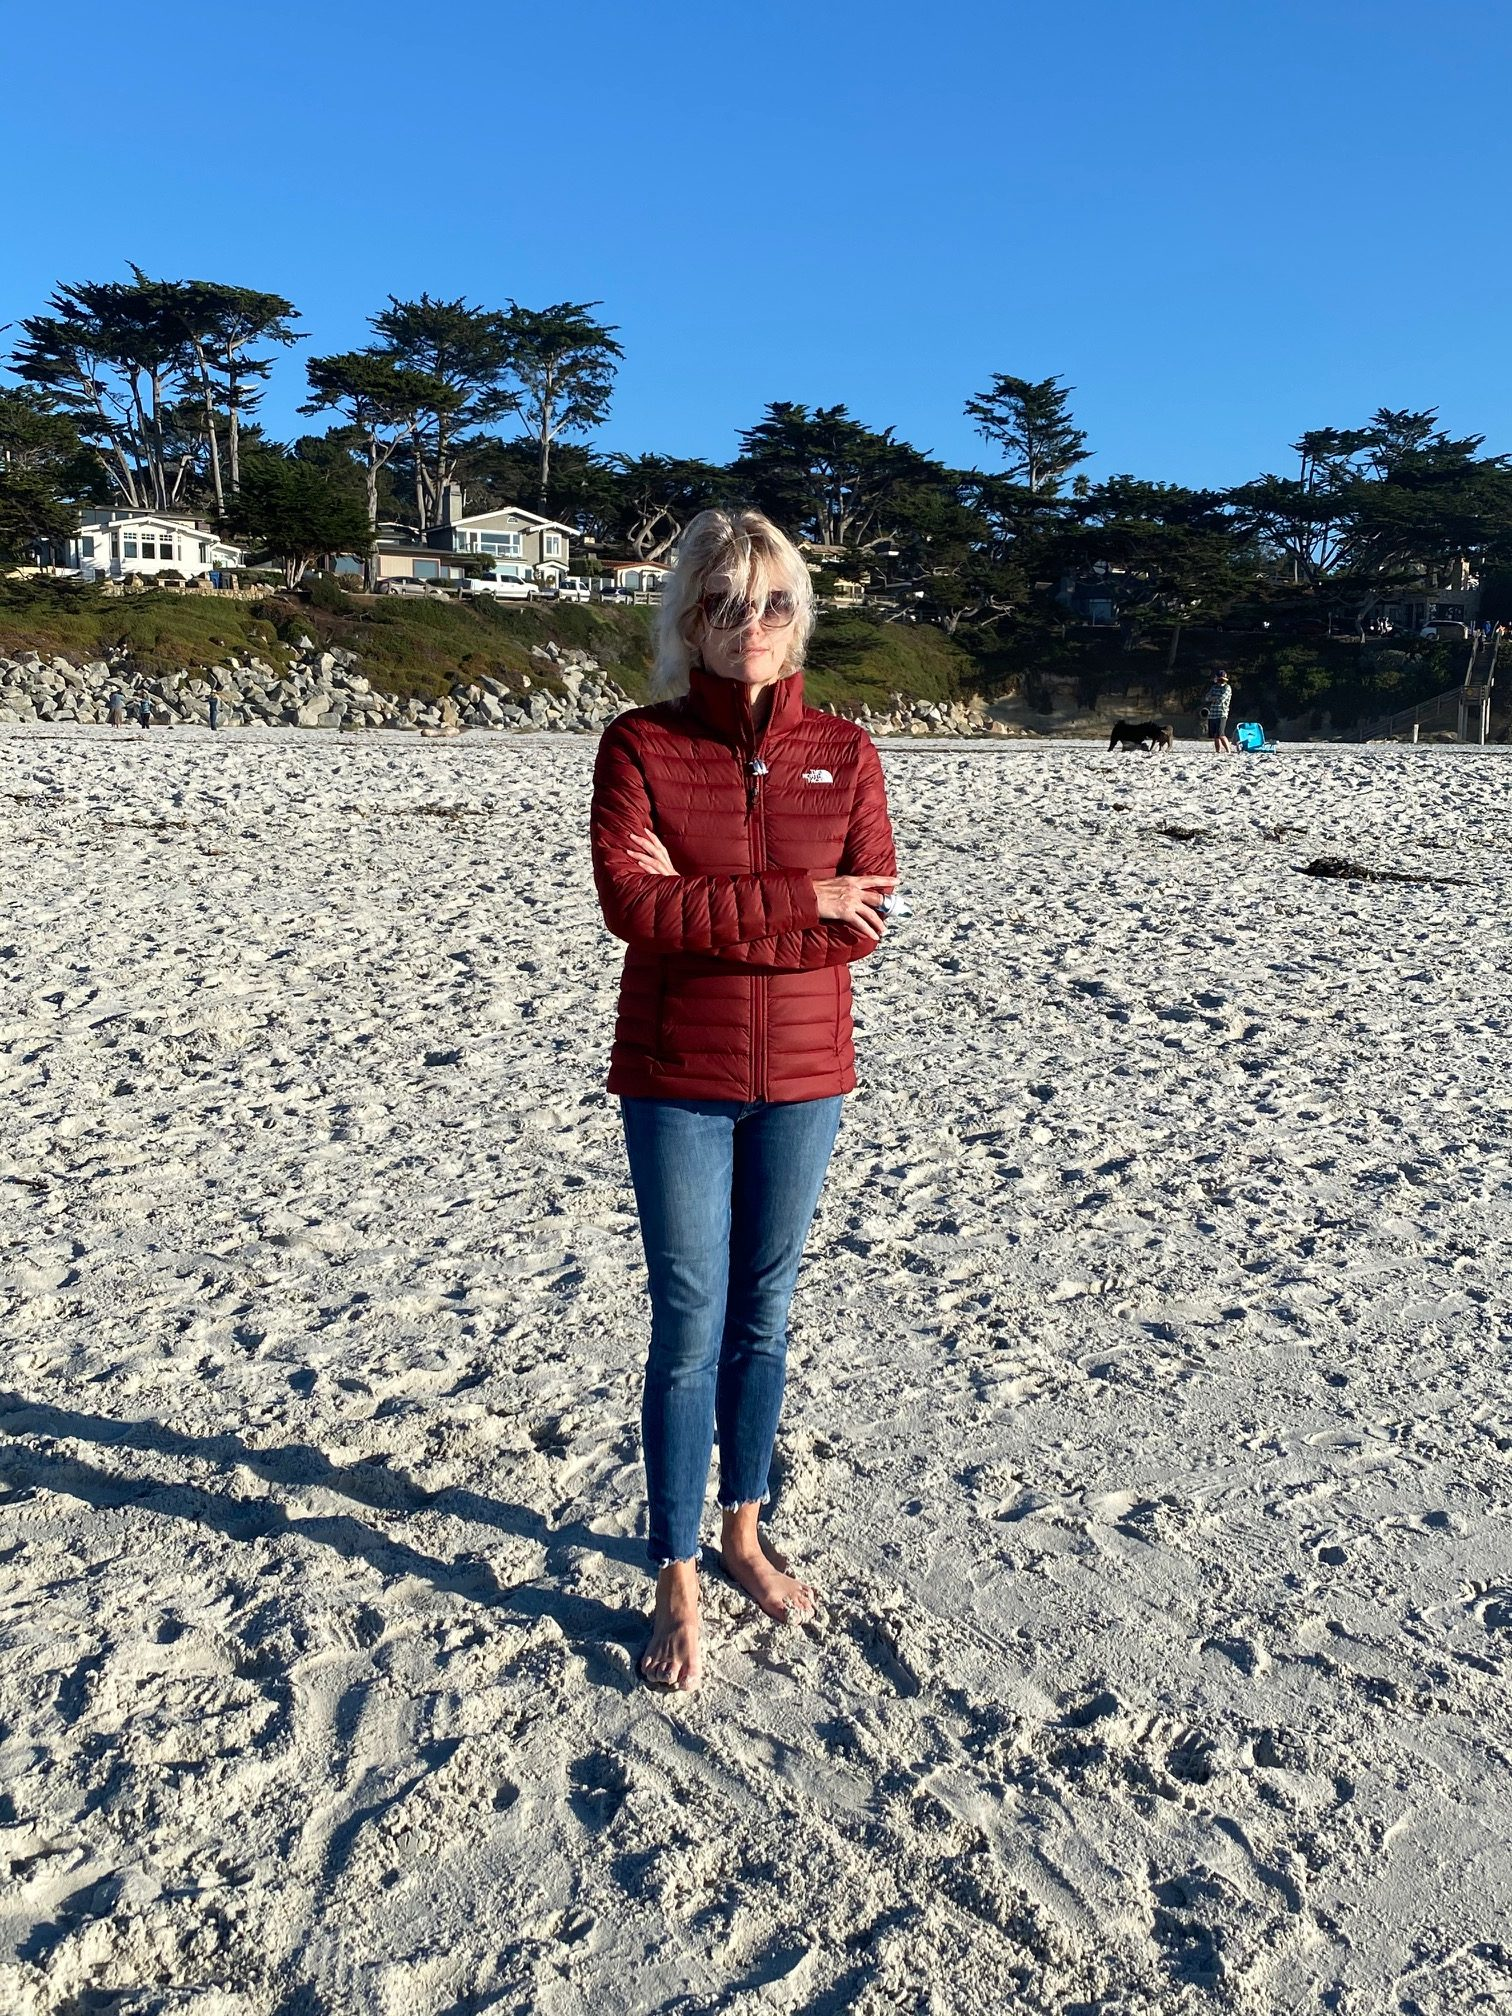 Woman standing on beach in Carmel